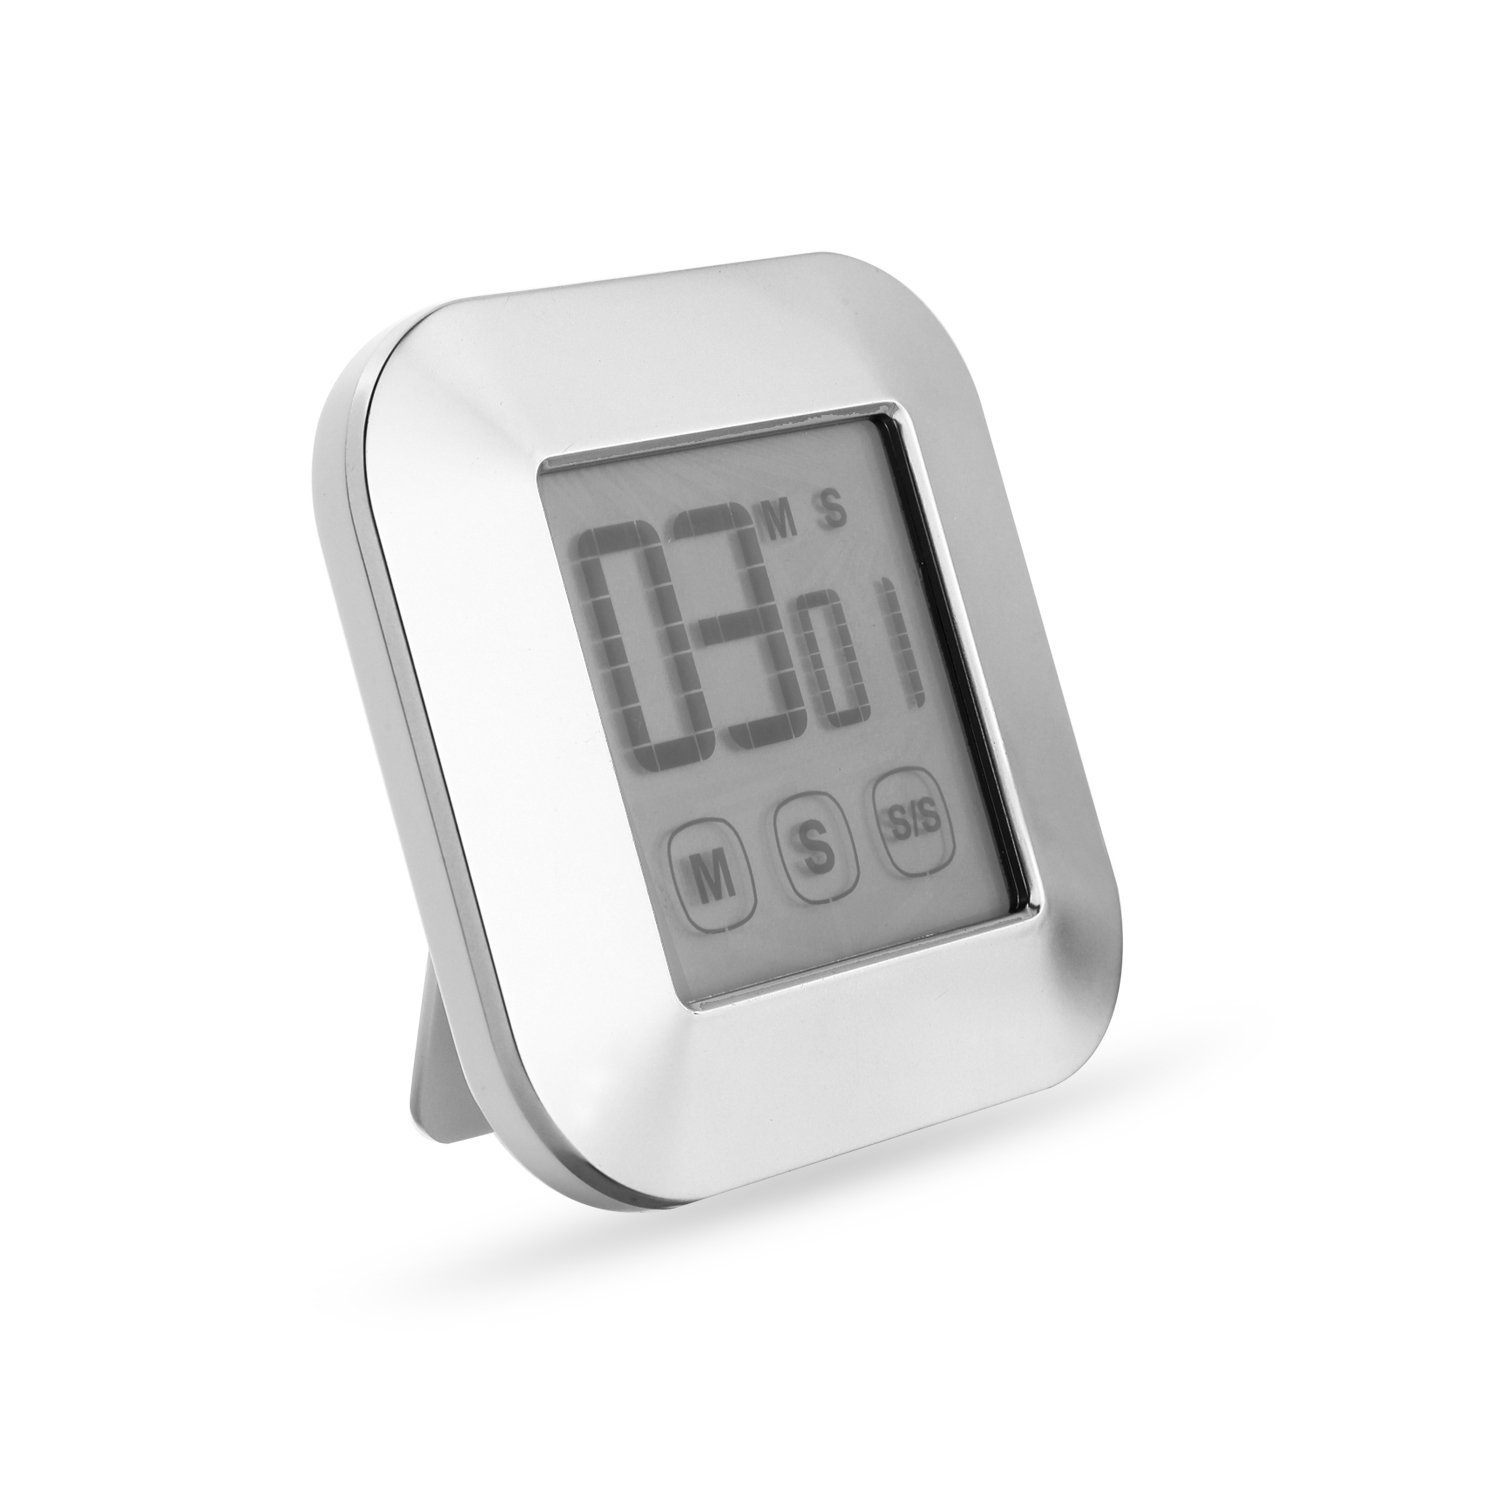 WERCOMIN Digital Kitchen Timer Touchscreen Cooking Timers Clock Backlit LCD Screen Loud Alarm Magnetic Backing Stand for Game, Classroom, Sports, Exercise by WERCOMIN (Image #4)